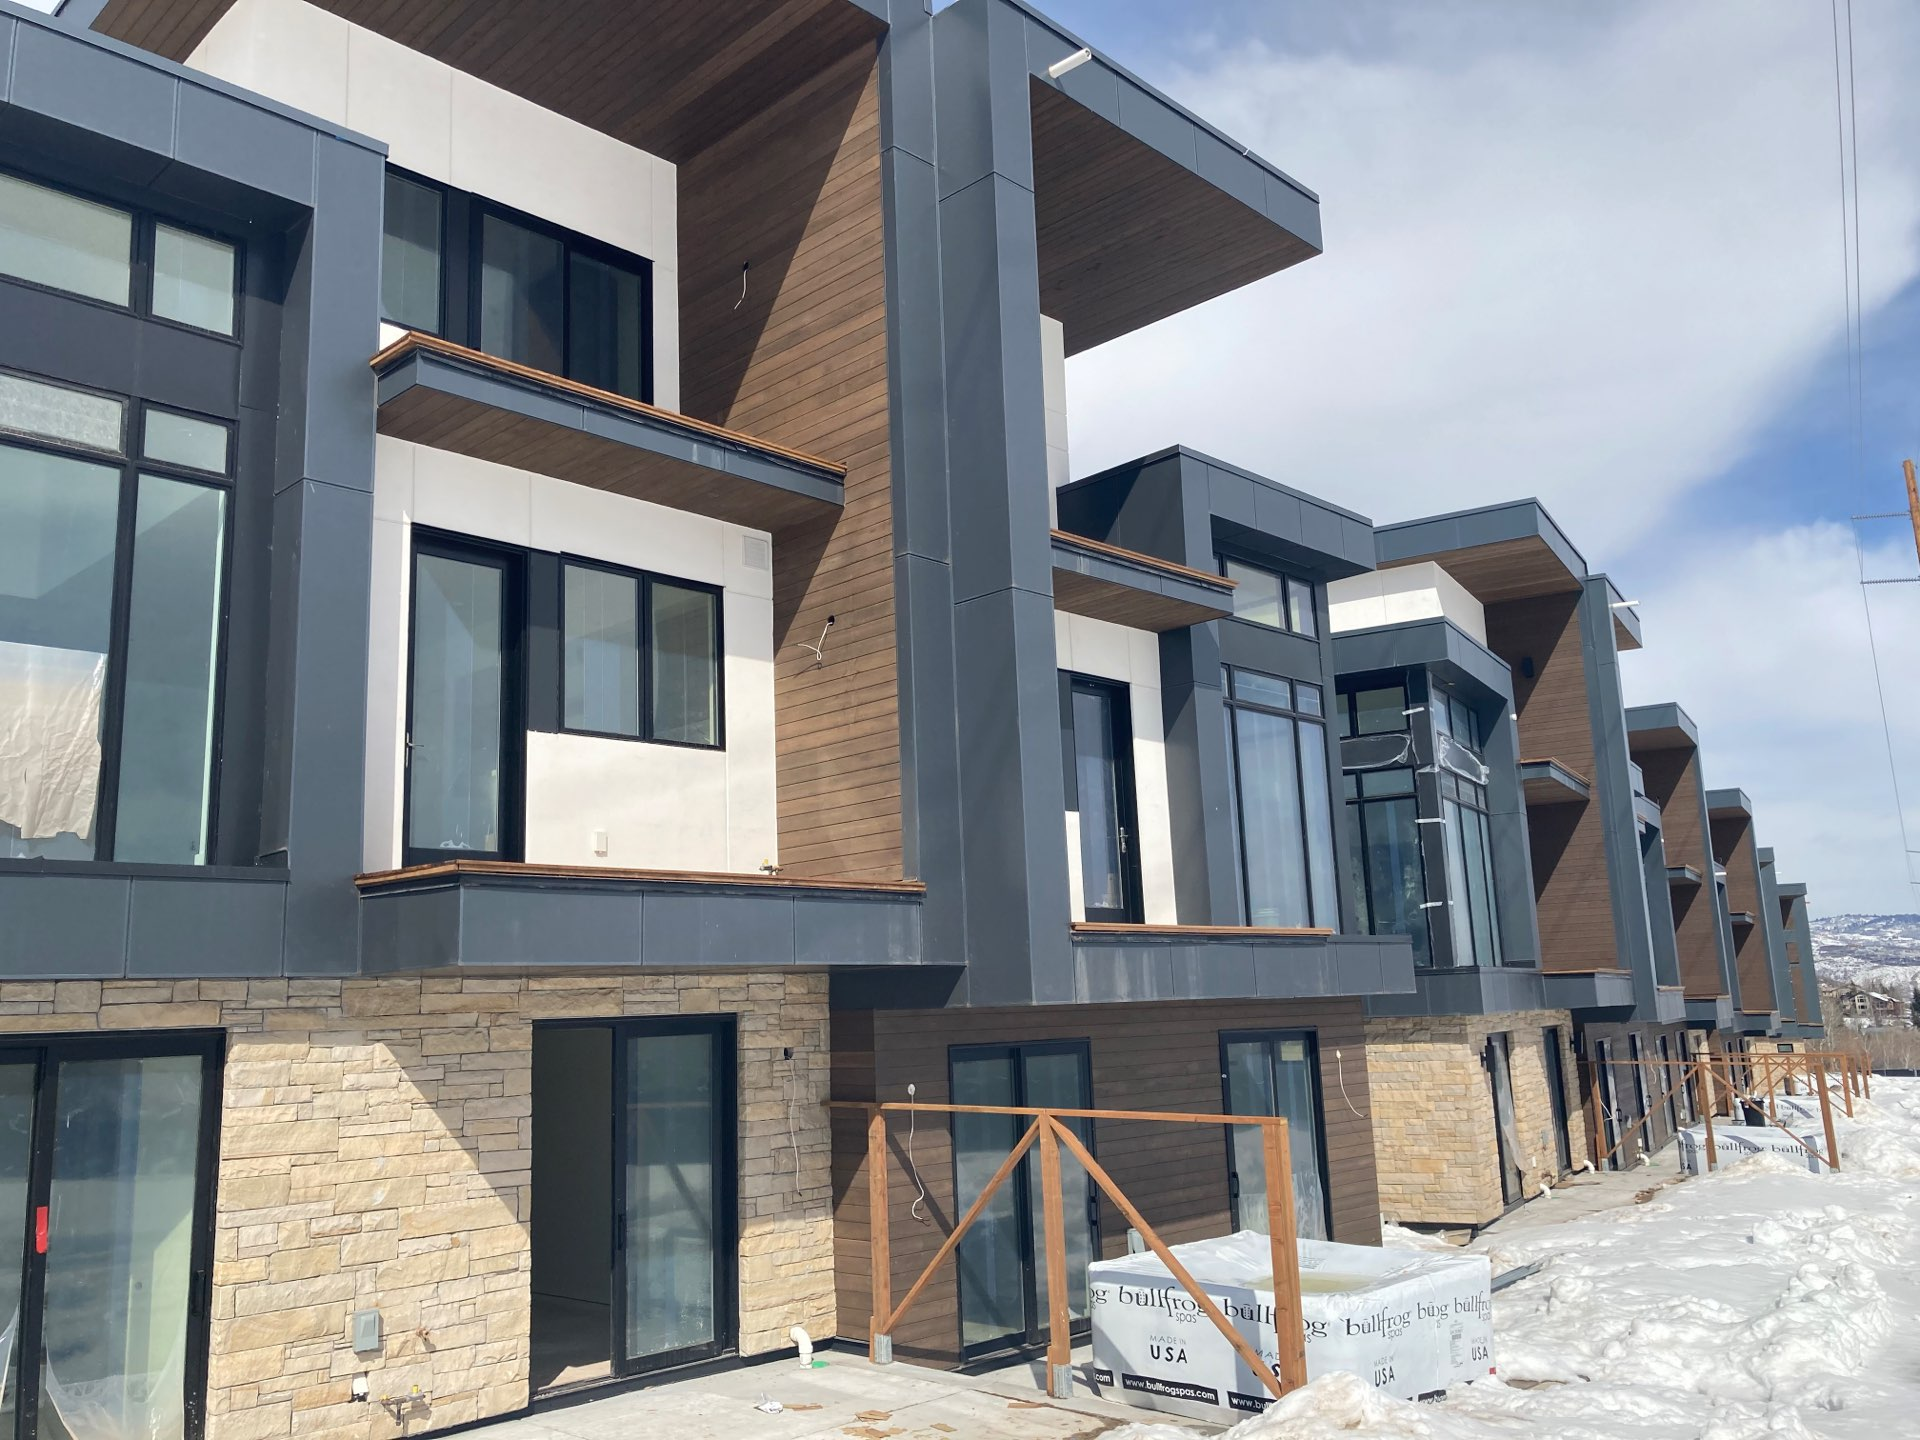 Unfinished exterior of Viridian Townhomes at Canyons Village in Park City, Utah, architectural design by Elliott Workgroup